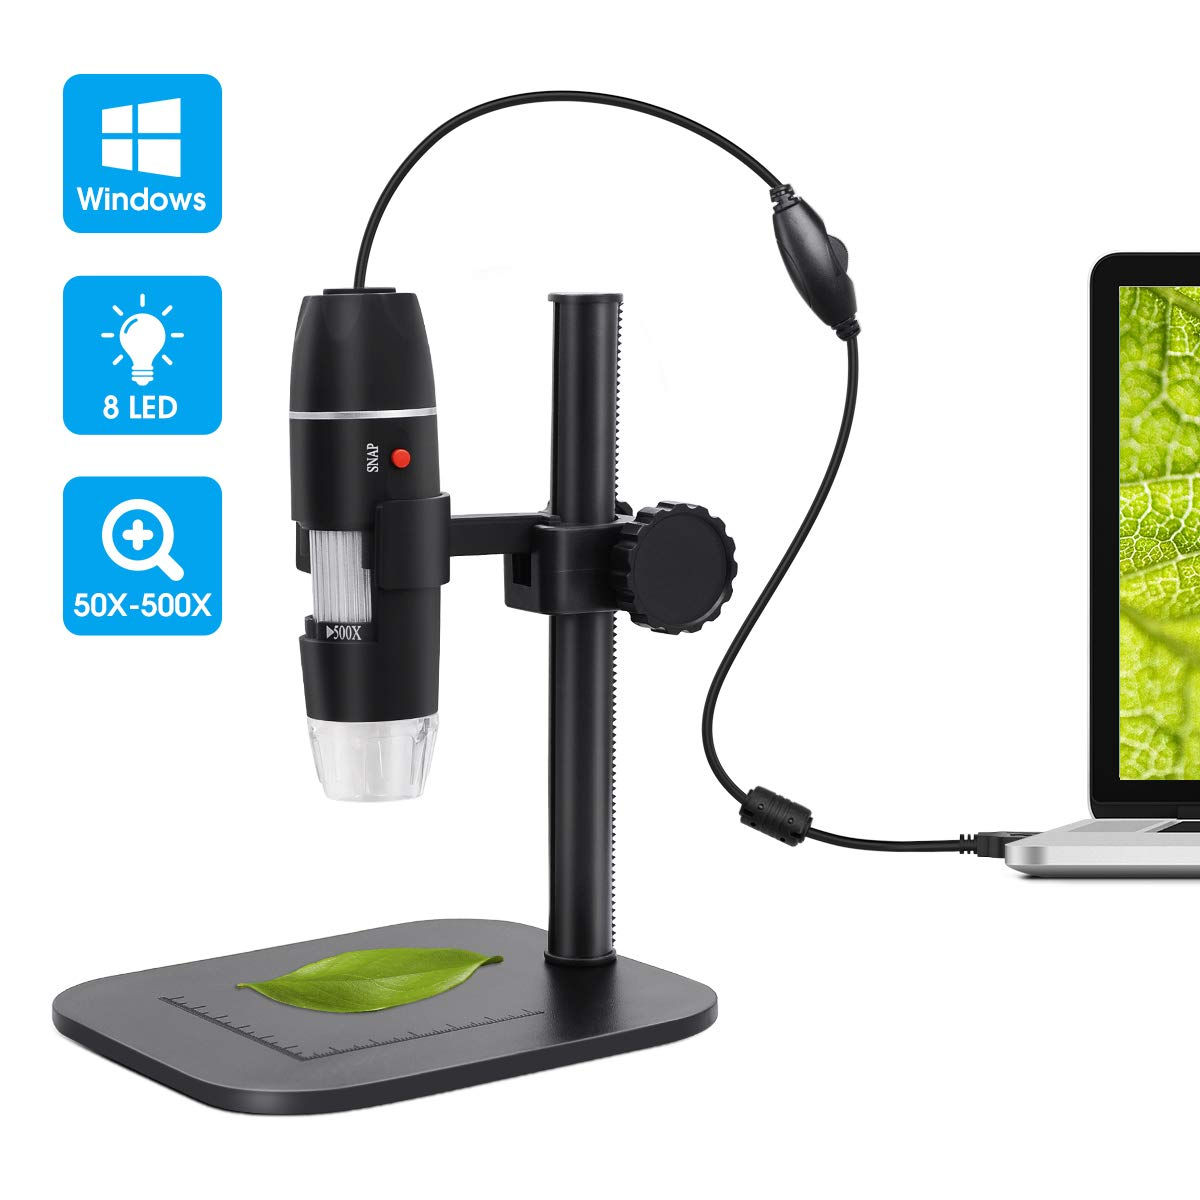 USB Digital Microscope, DEPSTECH Portable 50-500X Microscope with 8 Brightness Adjustable LEDs and Measuring Ruler, Compatible with Windows XP / 7/8 / 10, Suit for Kids and Lab by DEPSTECH